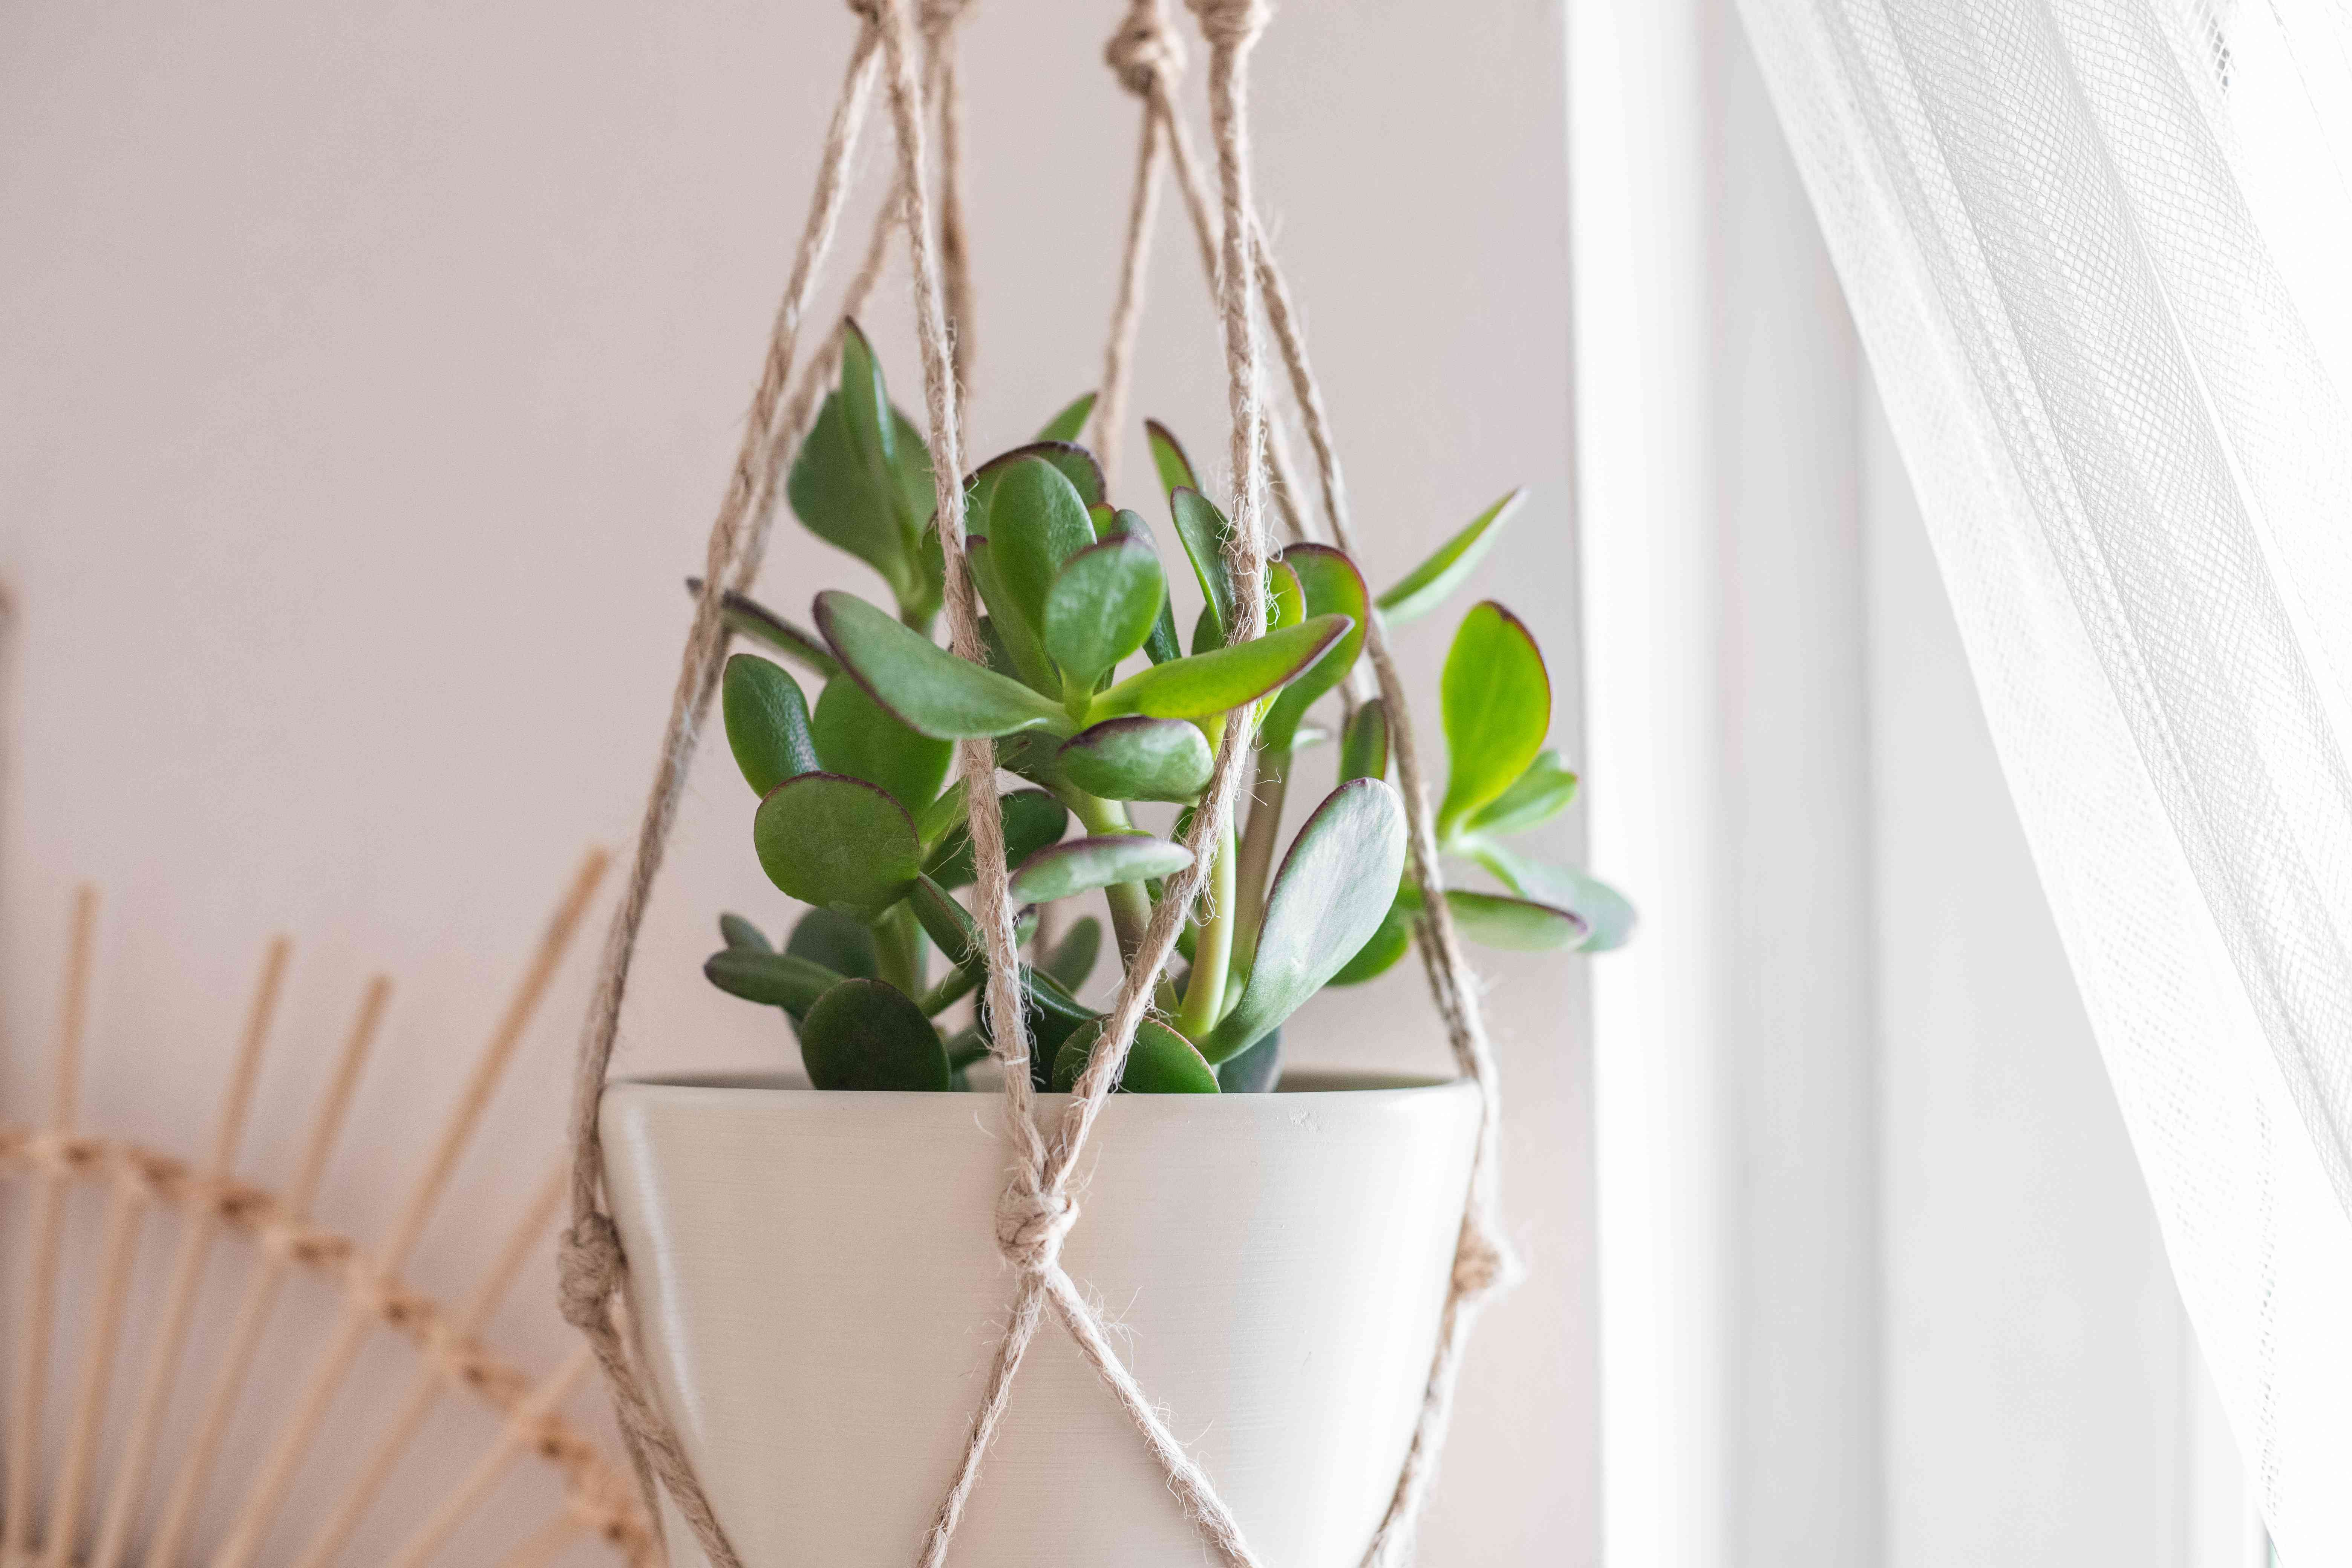 jade plant hangs from macrame holder near a window with sheer curtains